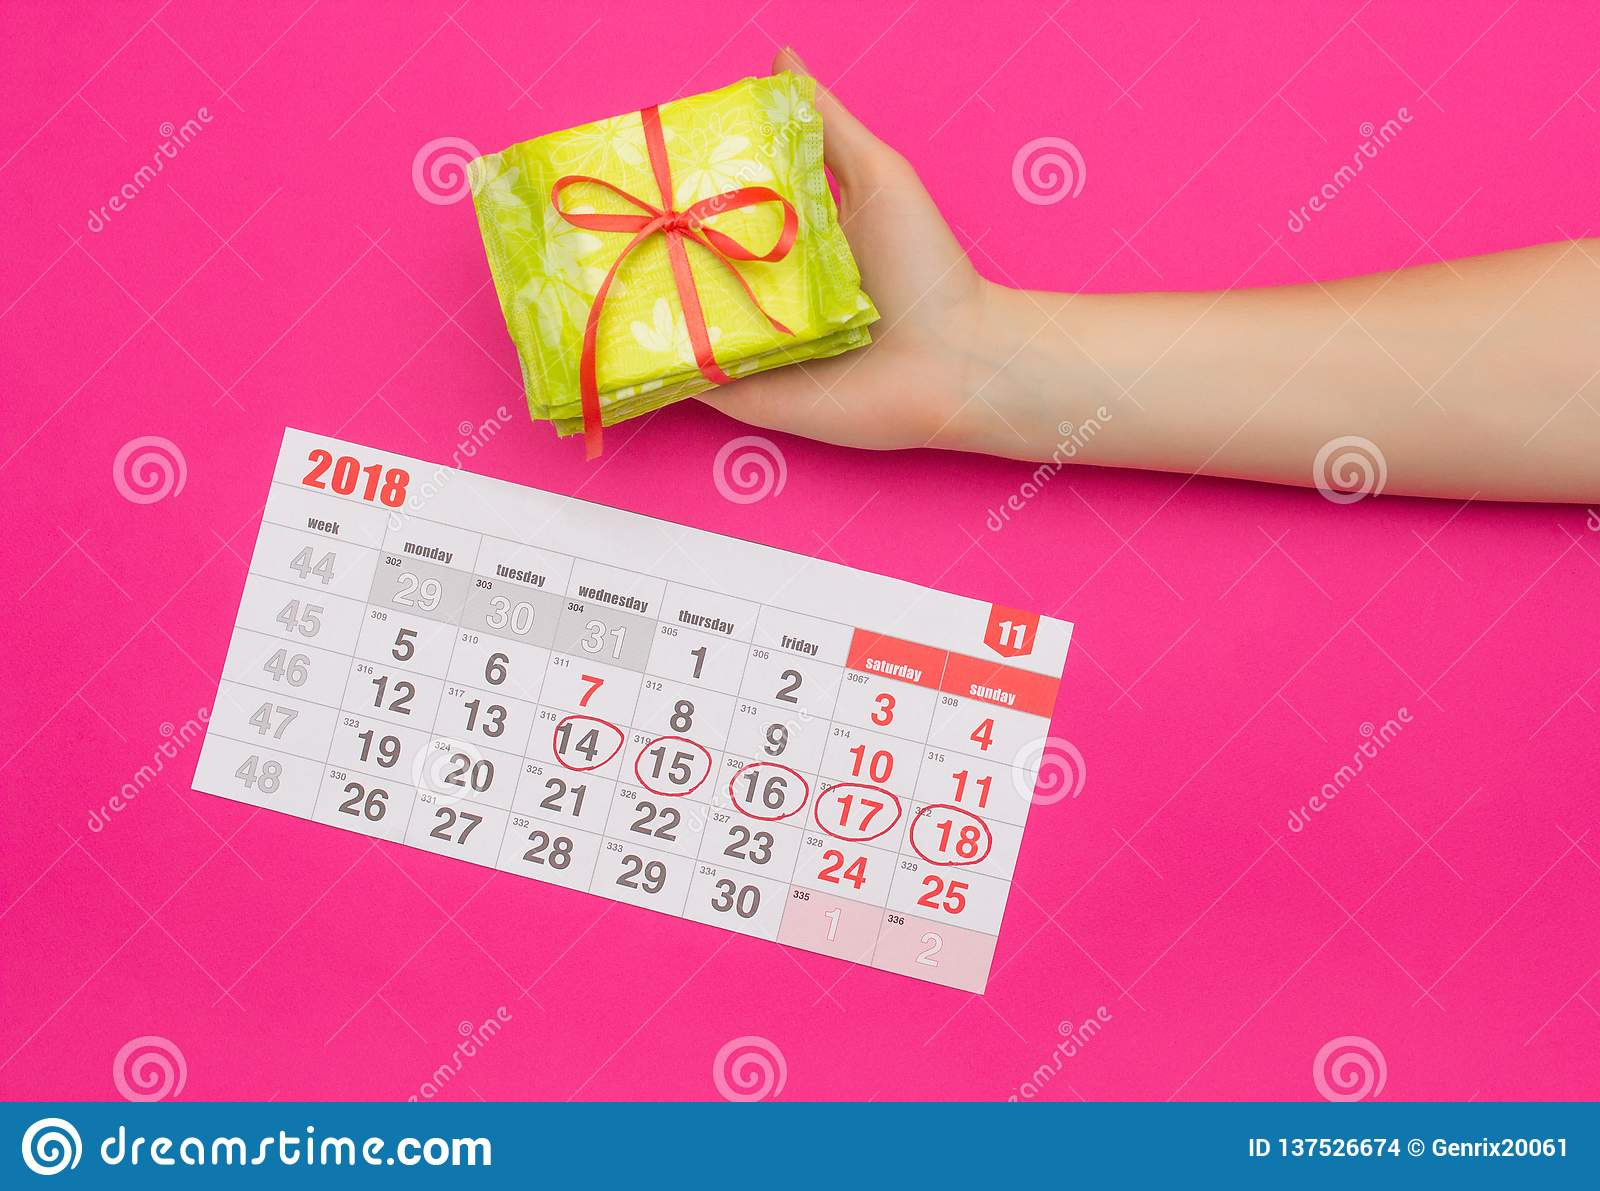 Calendar with marked days of menstruation in a girl, female hand with a stack of sanitary pads, pink background, period, pms